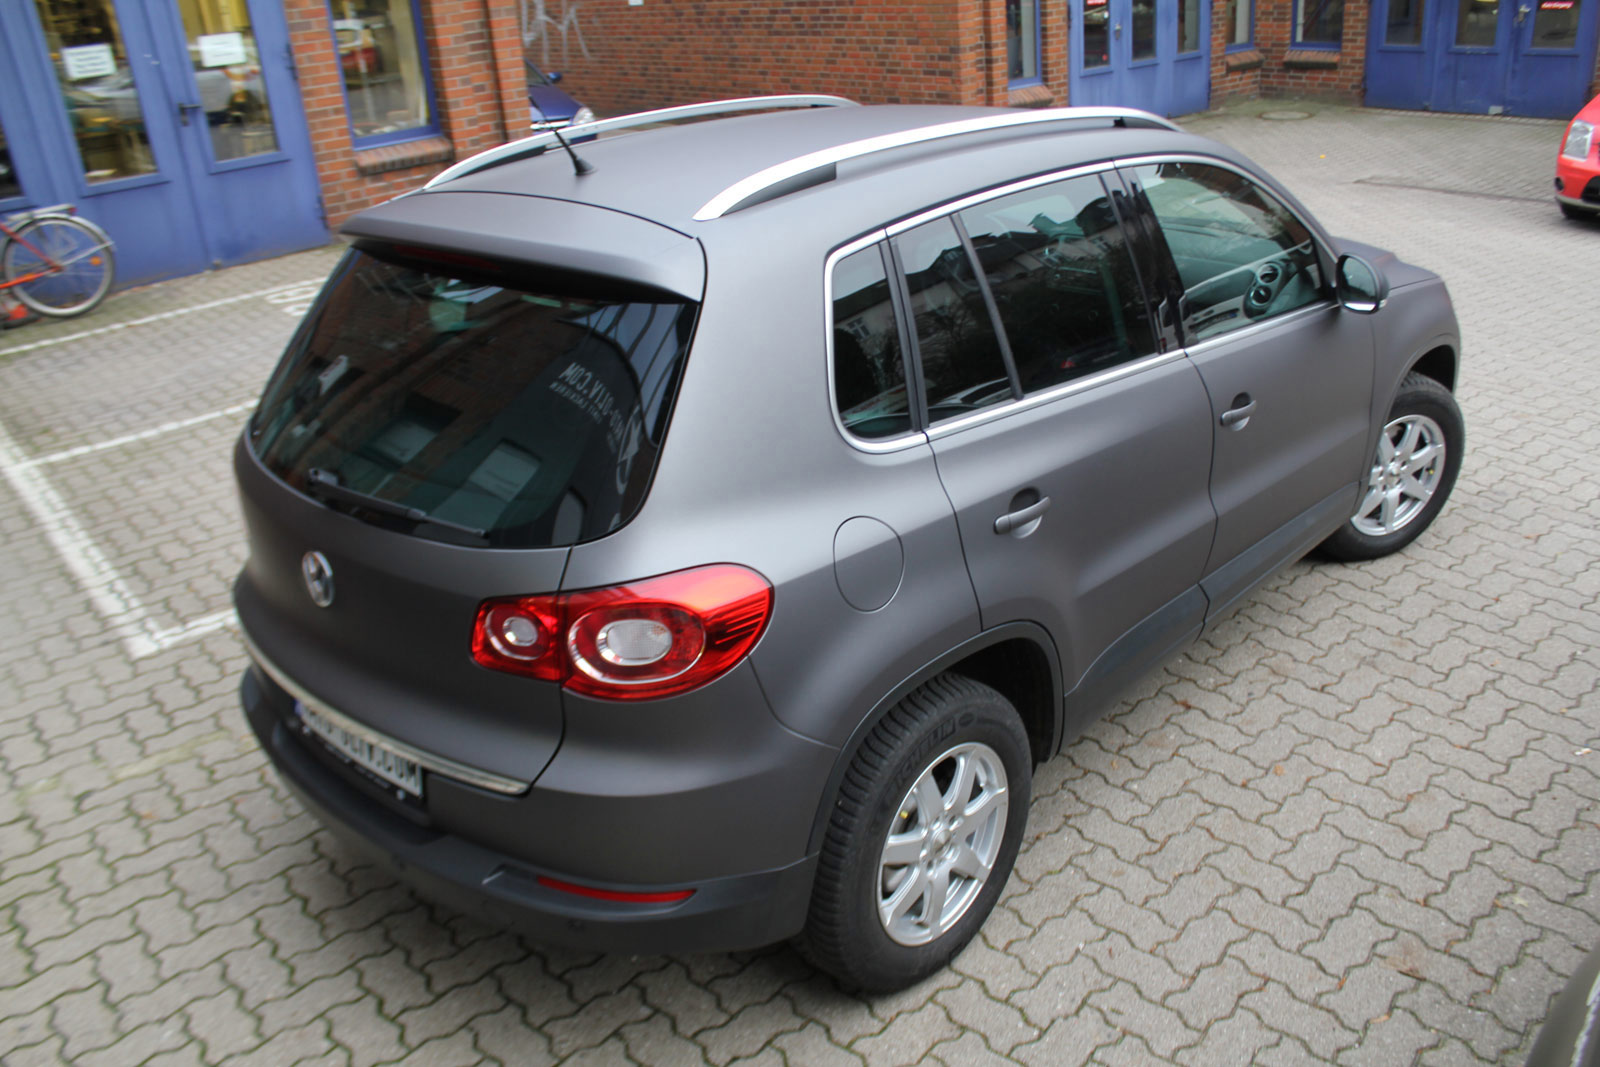 Heckansicht des VW Tiguan foliert in Anthrazit matt metallic.